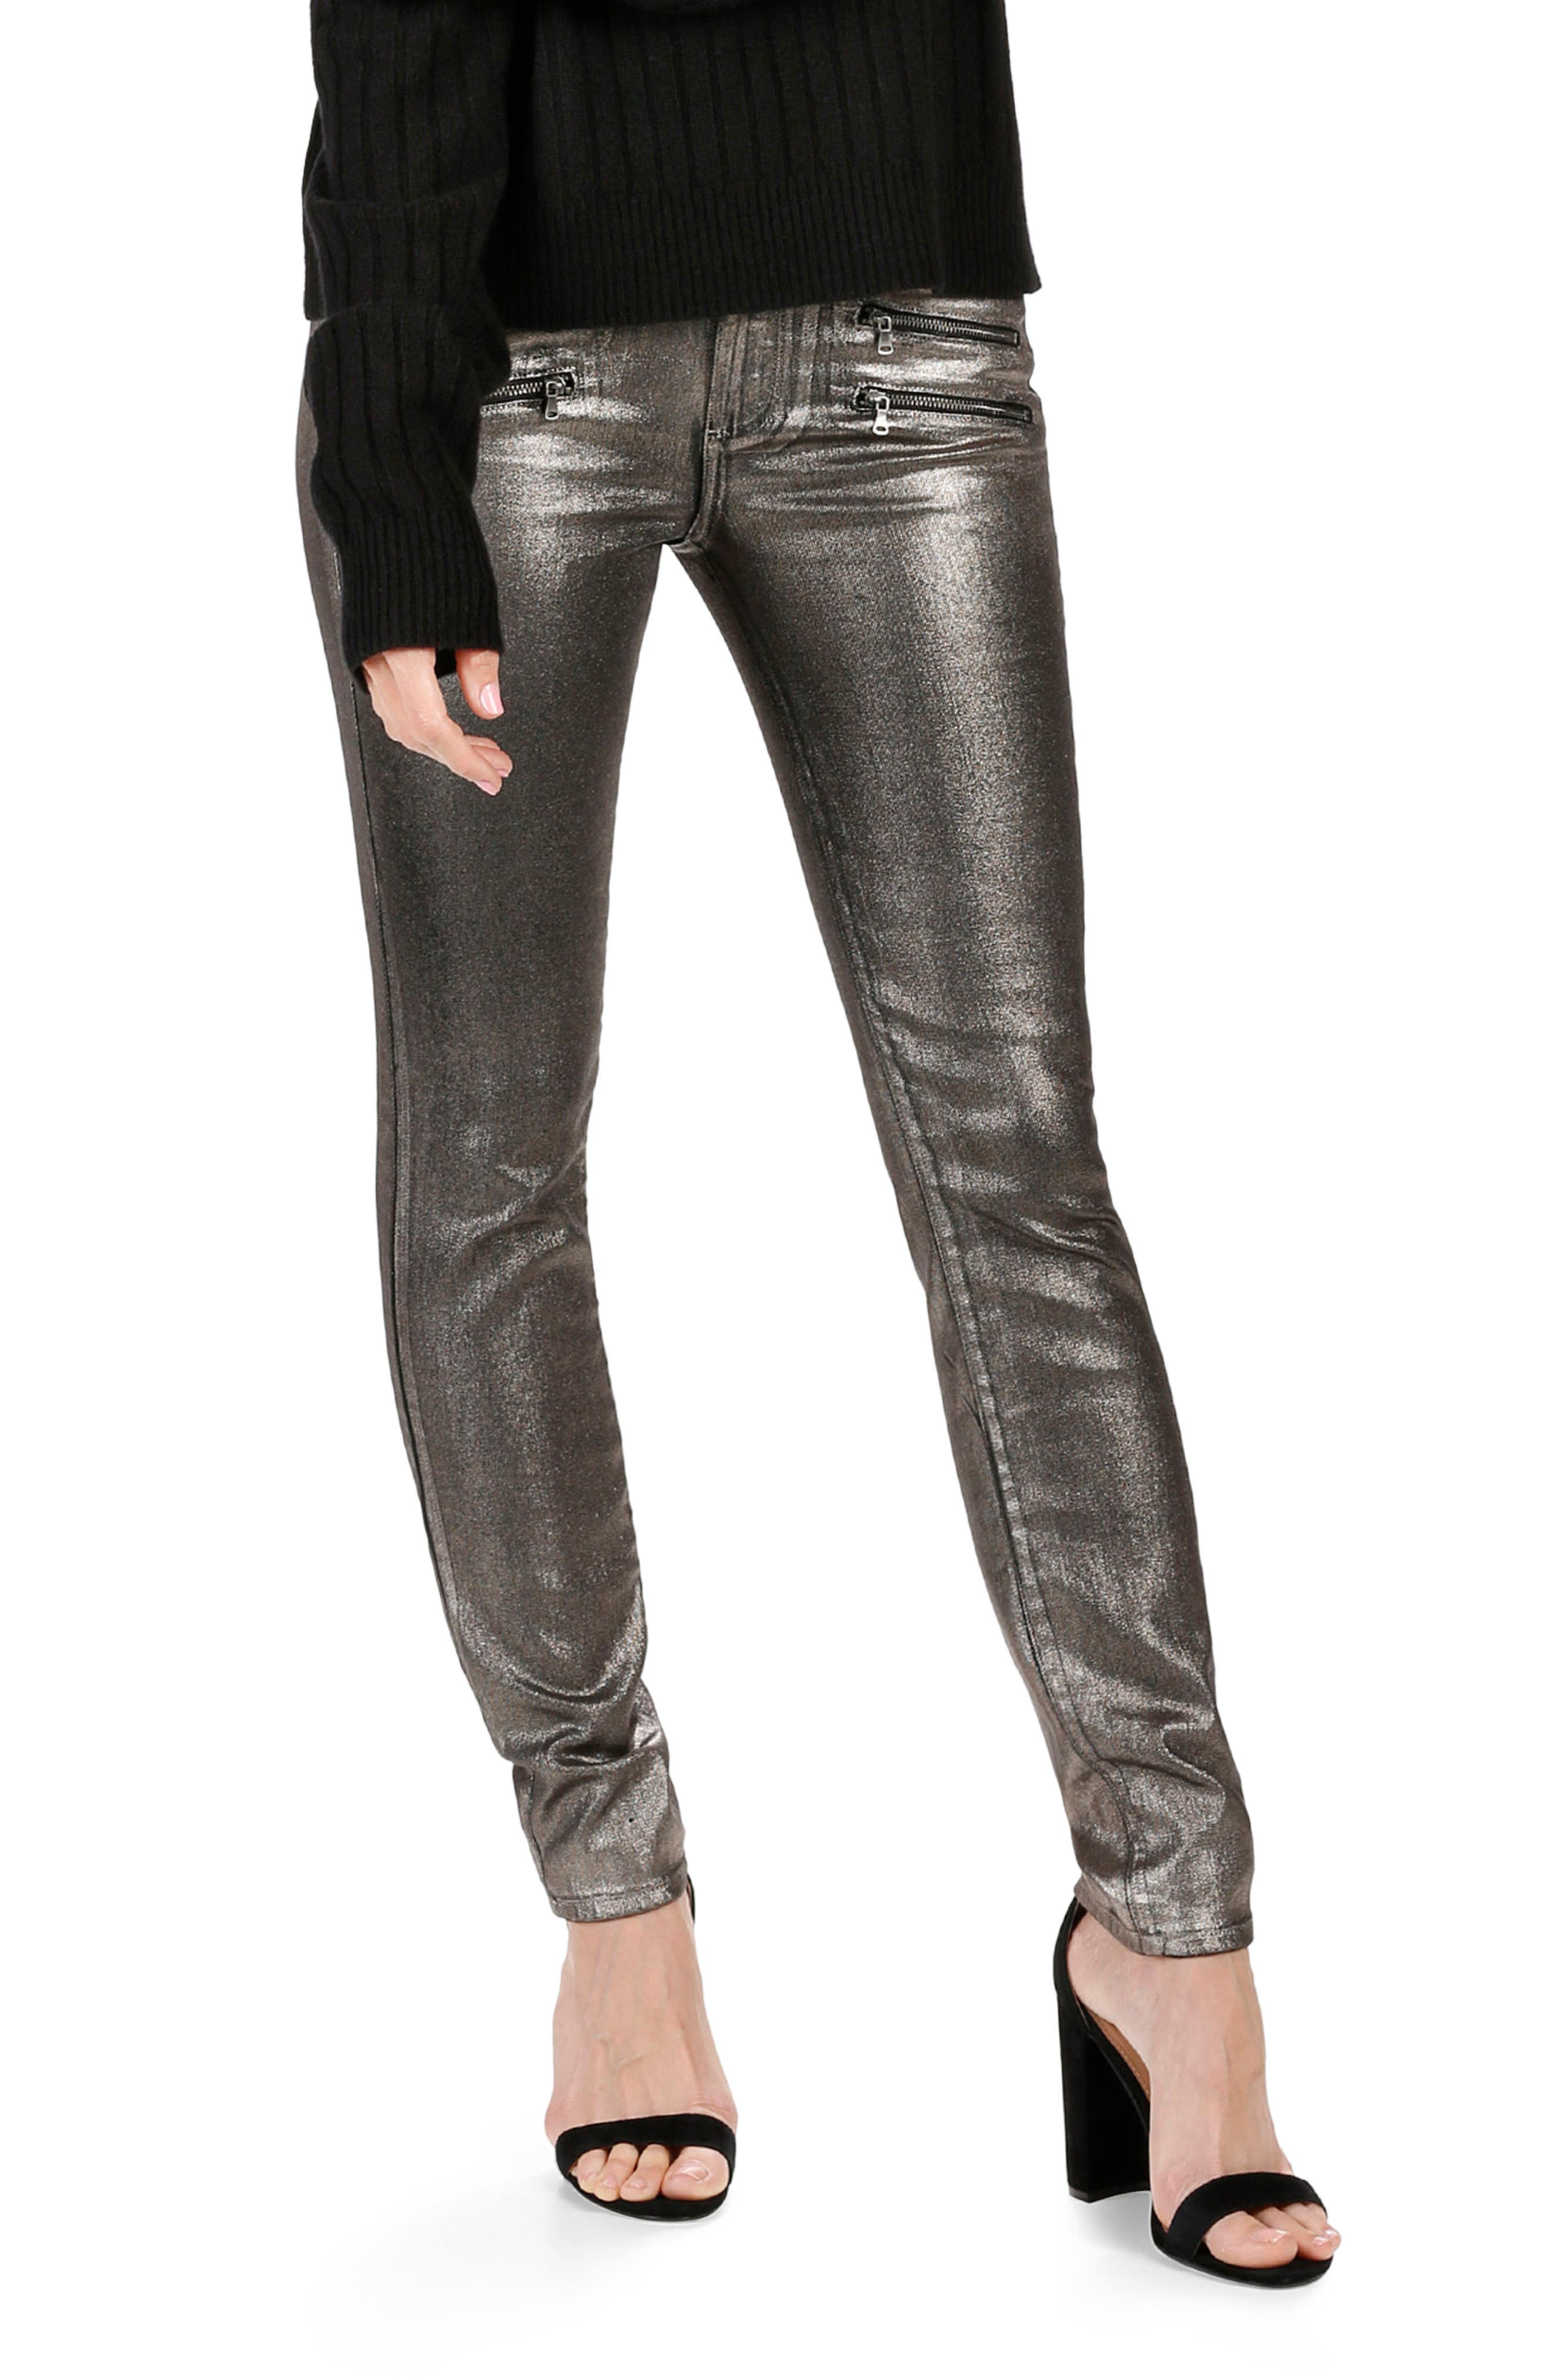 Main Image - Rosie HW x PAIGE Stevie High Waist Skinny Jeans (Champagne Galaxy Coating)